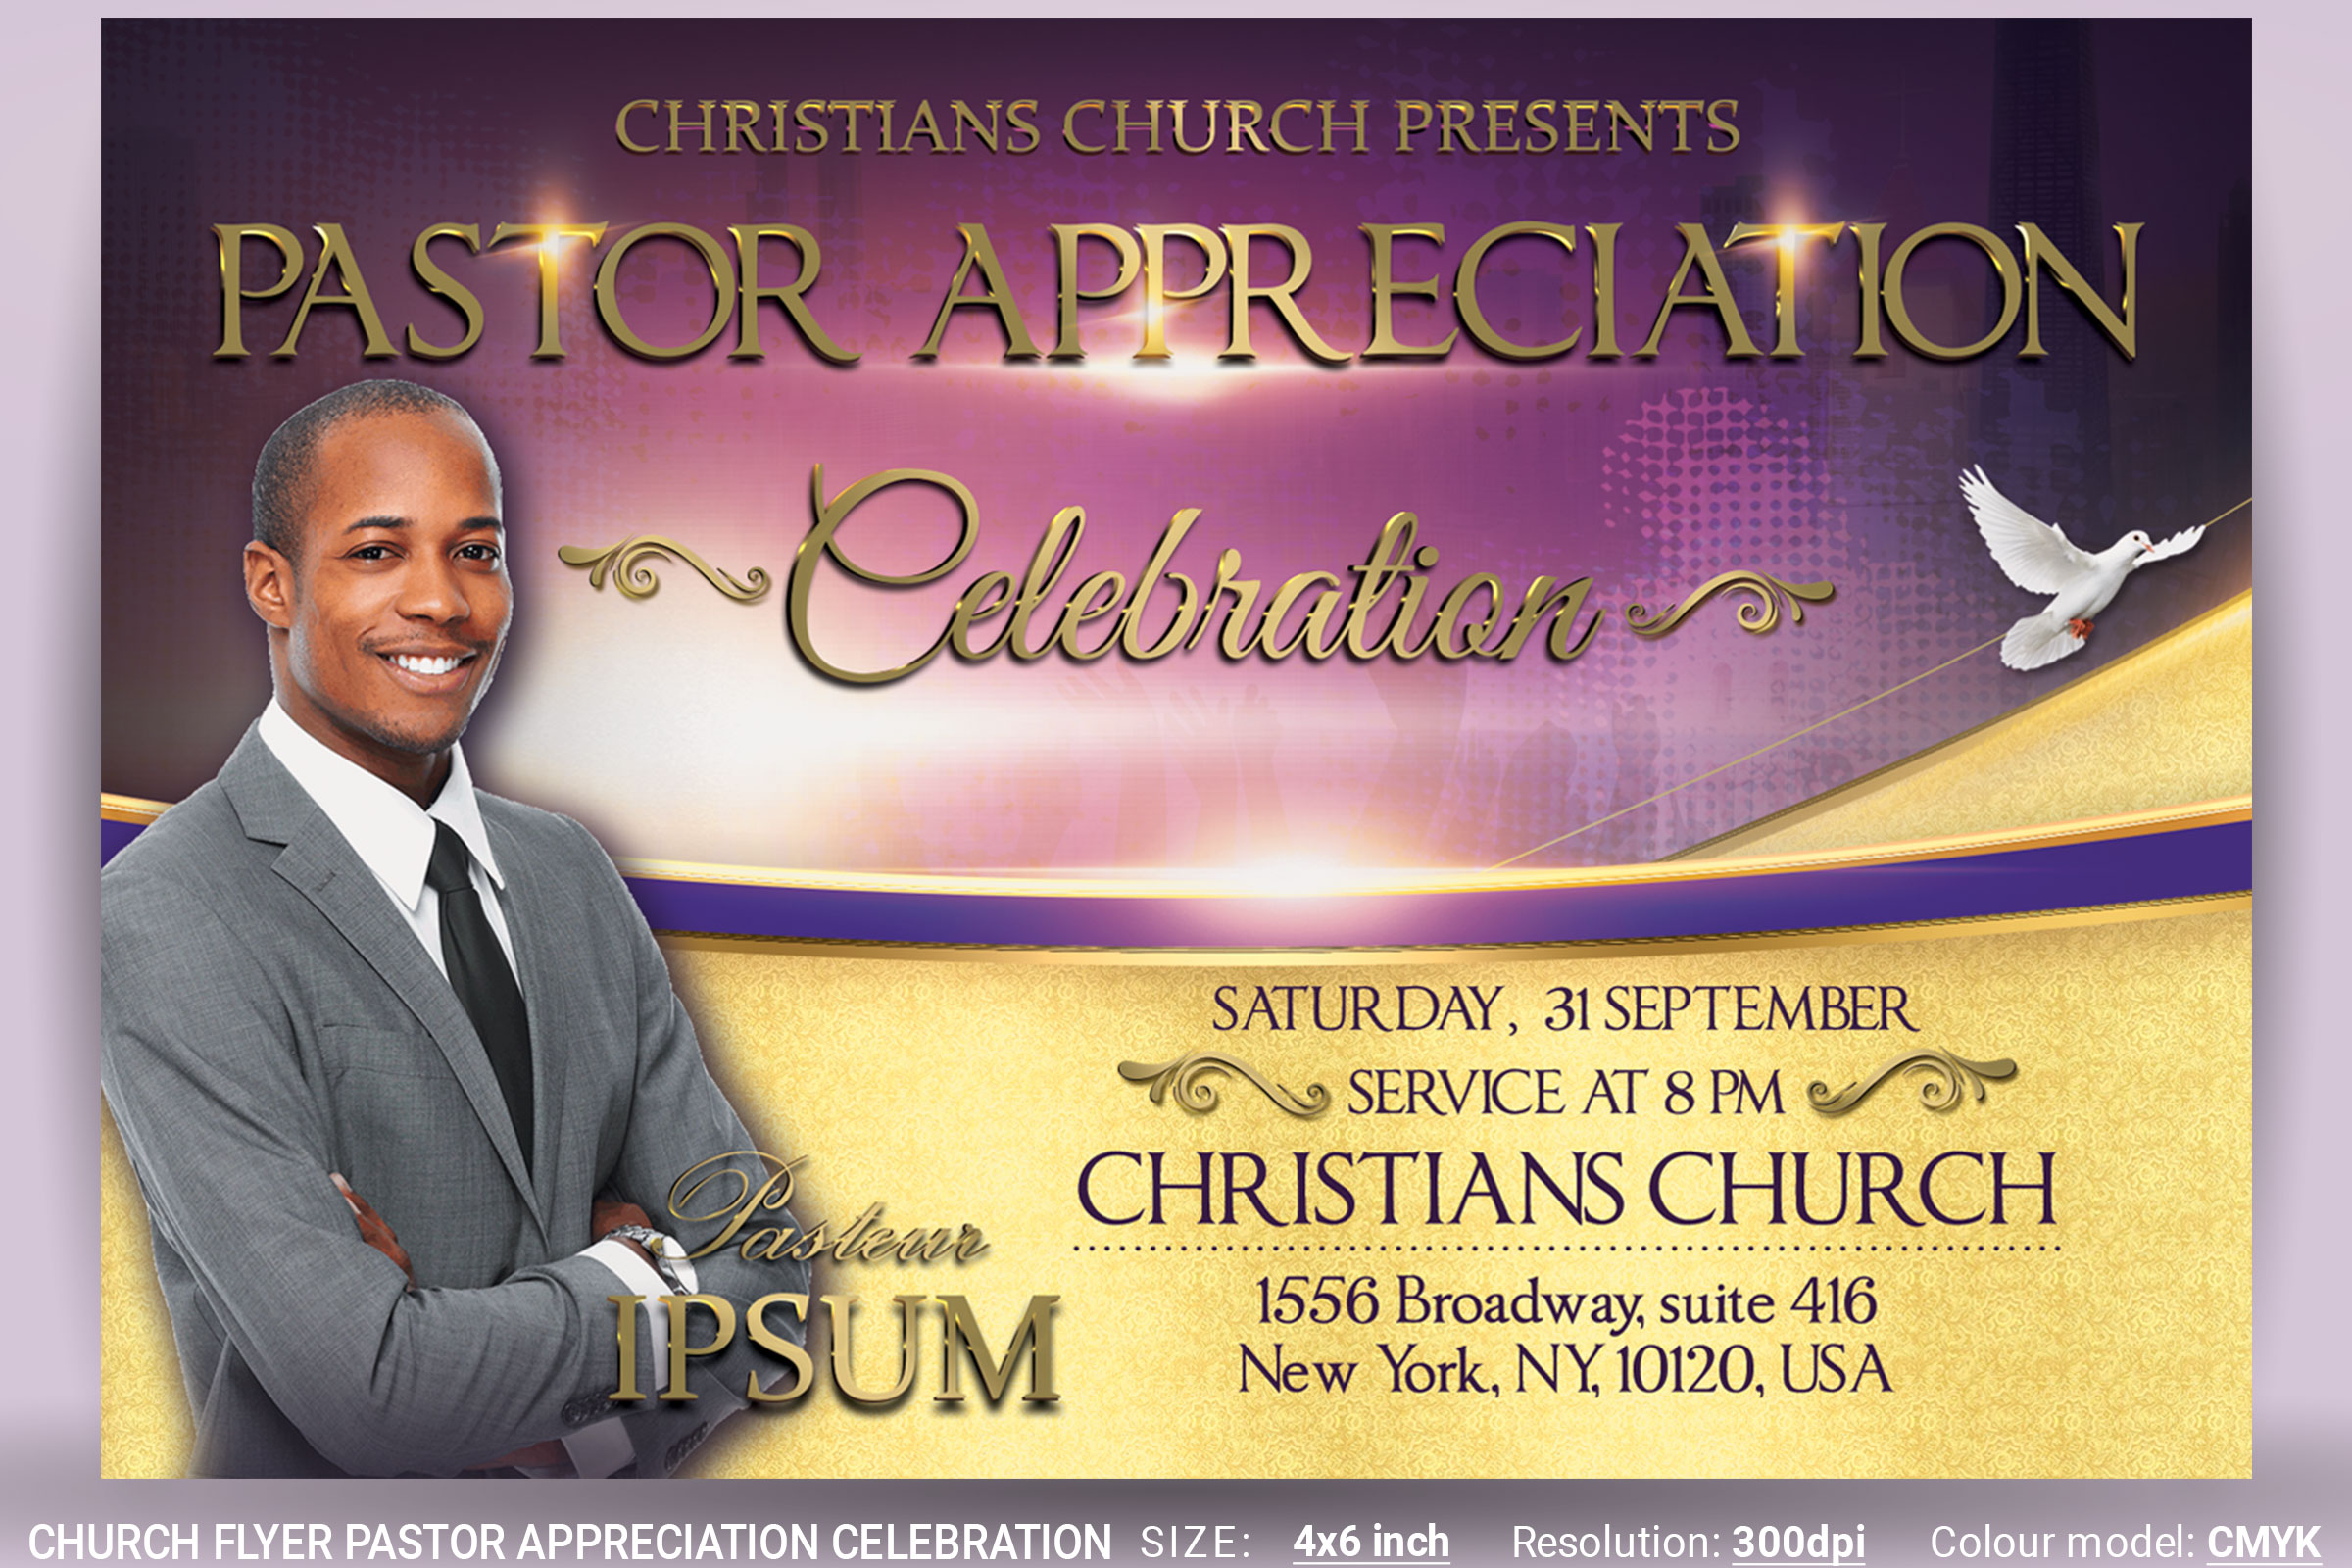 Church Flyer Pastor Appreciation Celebration Example Image 1